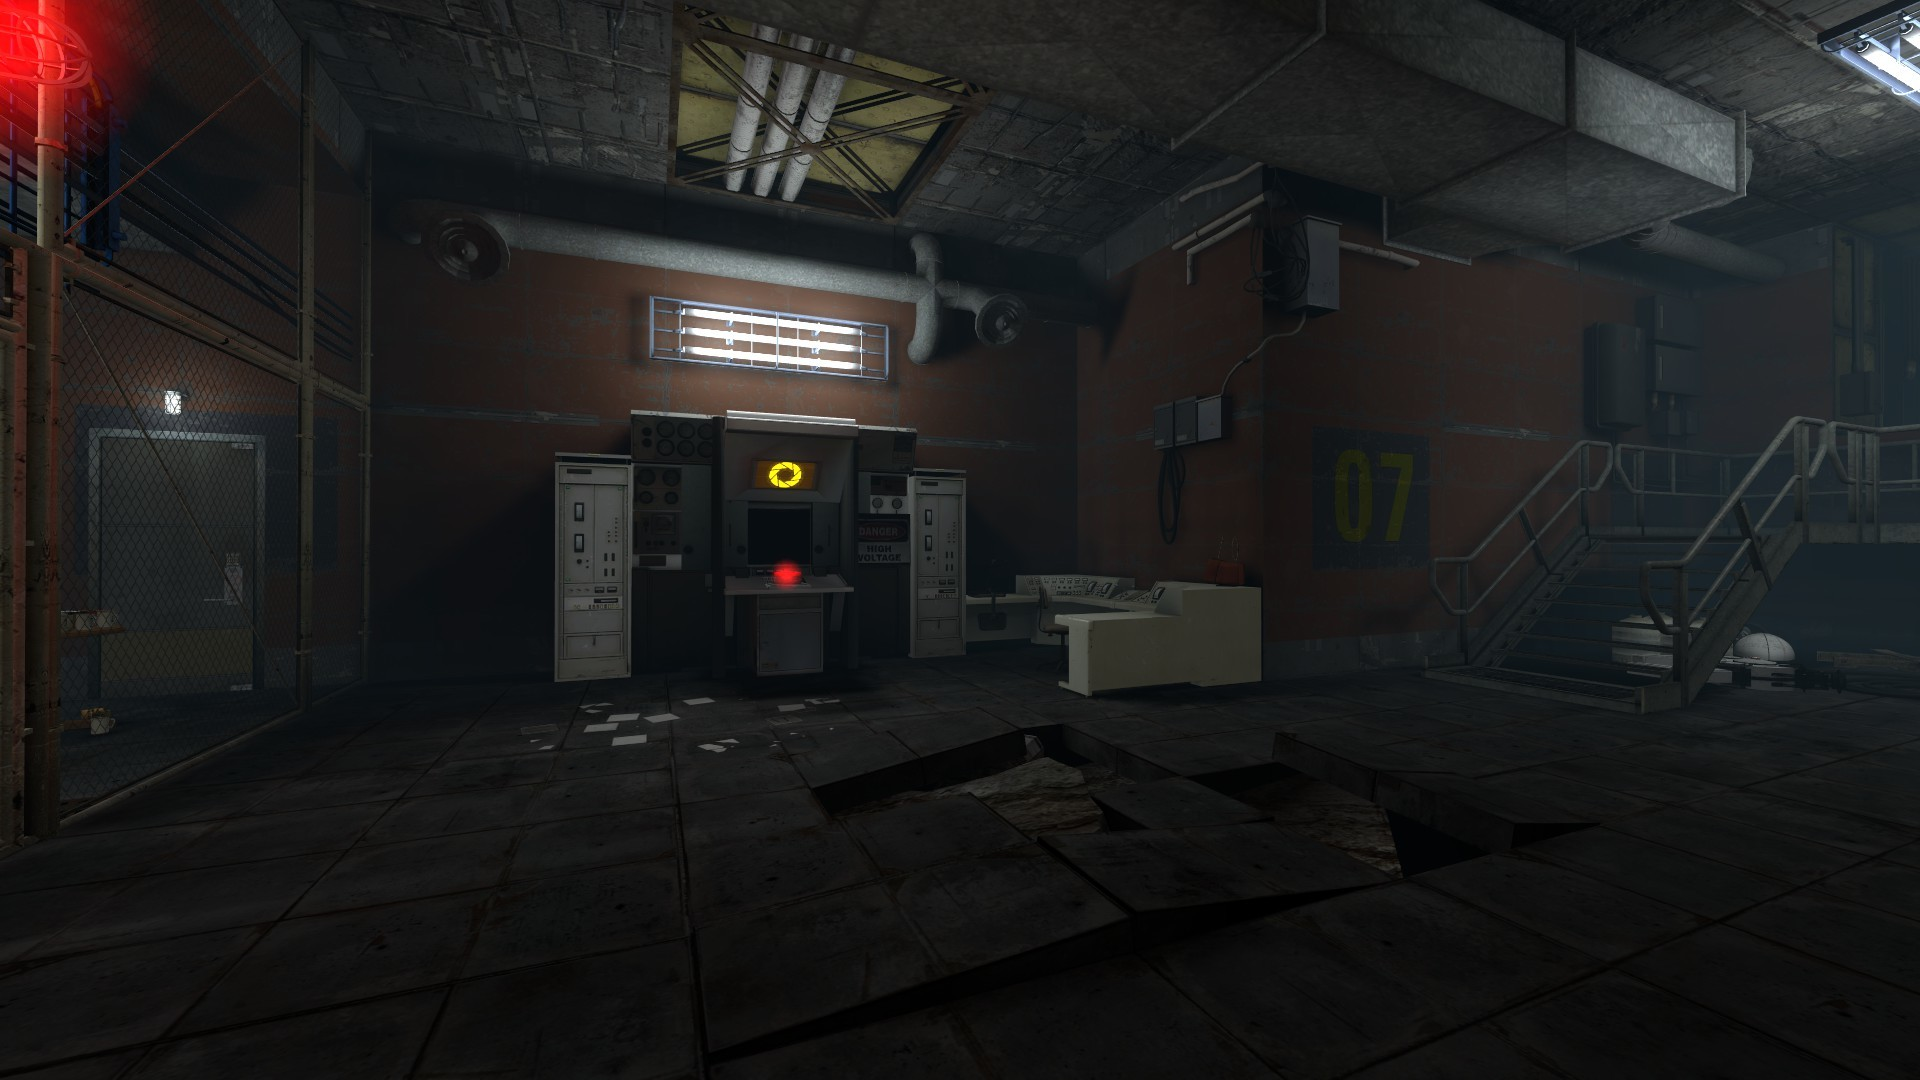 Ambitious Portal 2 mod Destroyed Aperture is still alive despite long silence | PC Gamer